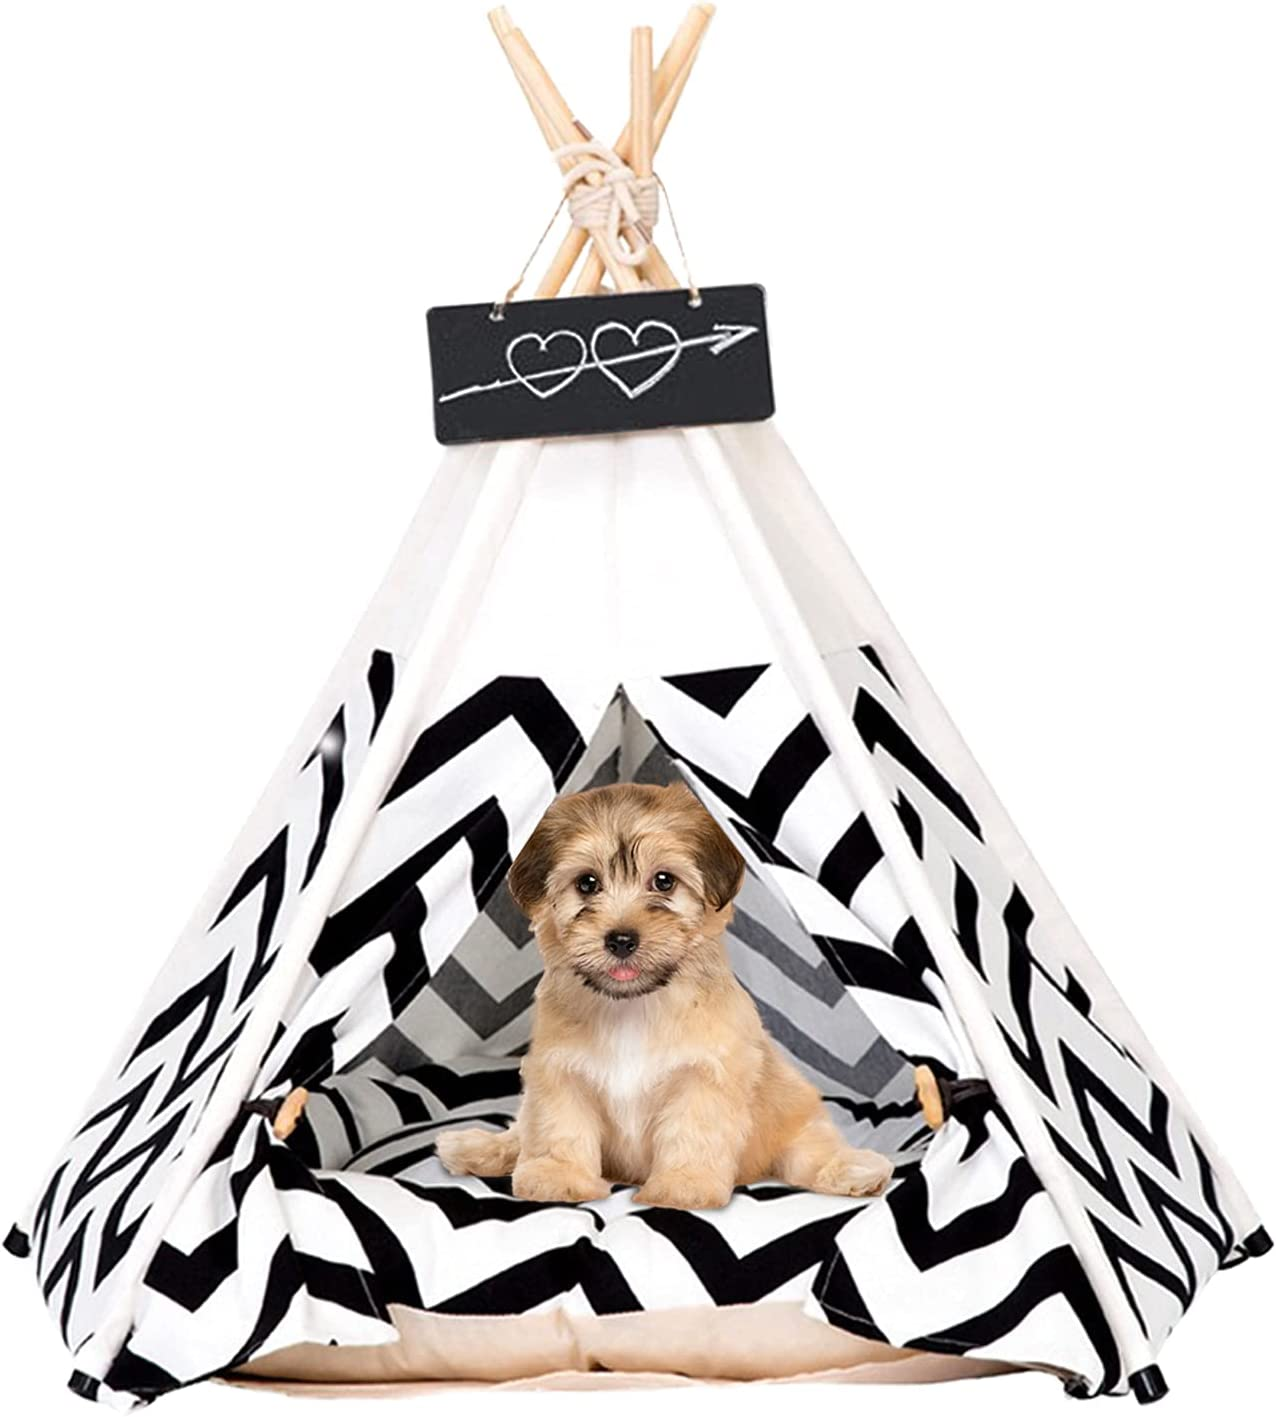 Pet Teepee Tents Miami Mall 24 Inch Portable Quality inspection Bed with Dog Th Indoor